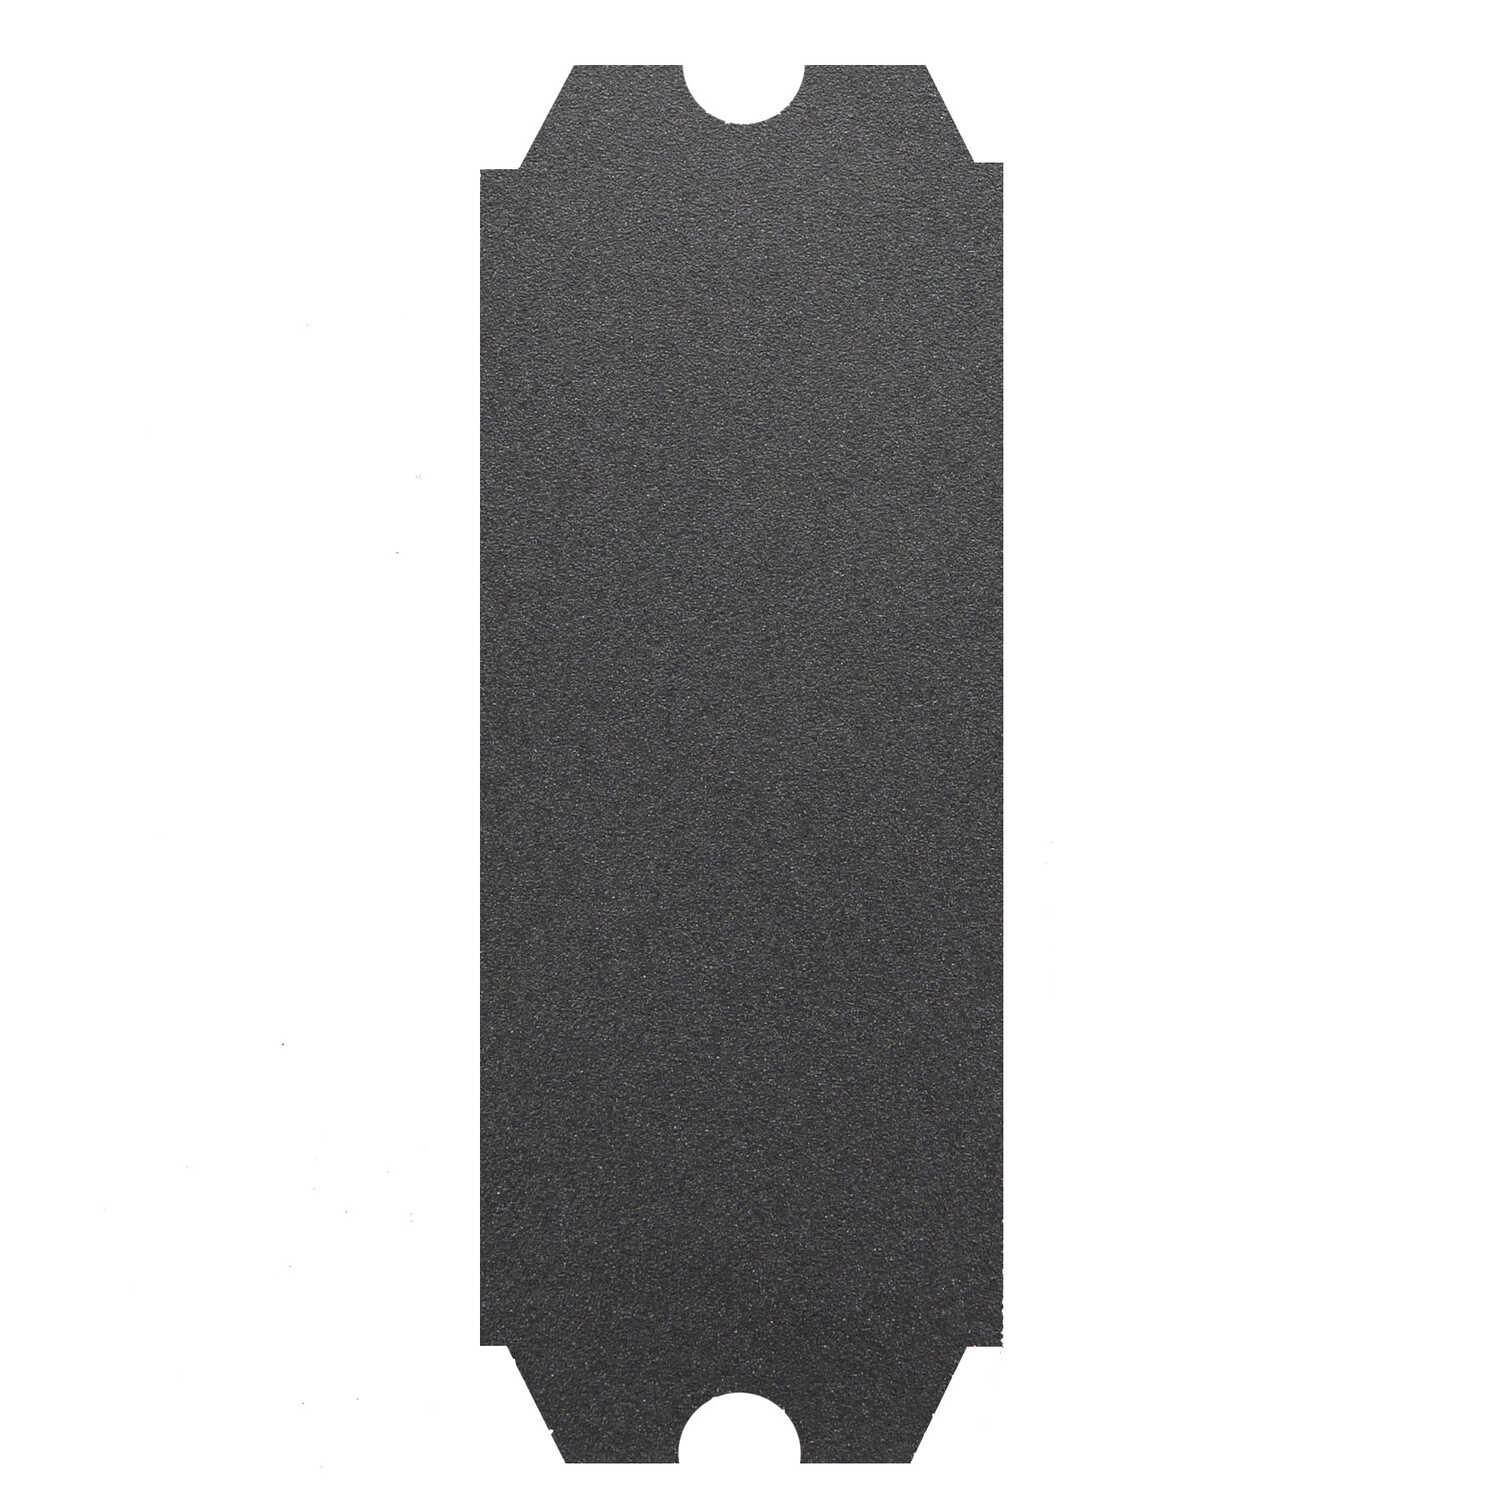 Gator  11-1/4 in. L x 4-1/4 in. W 100 Grit Medium  Silicon Carbide  Drywall Sanding Sheet  1 pc.